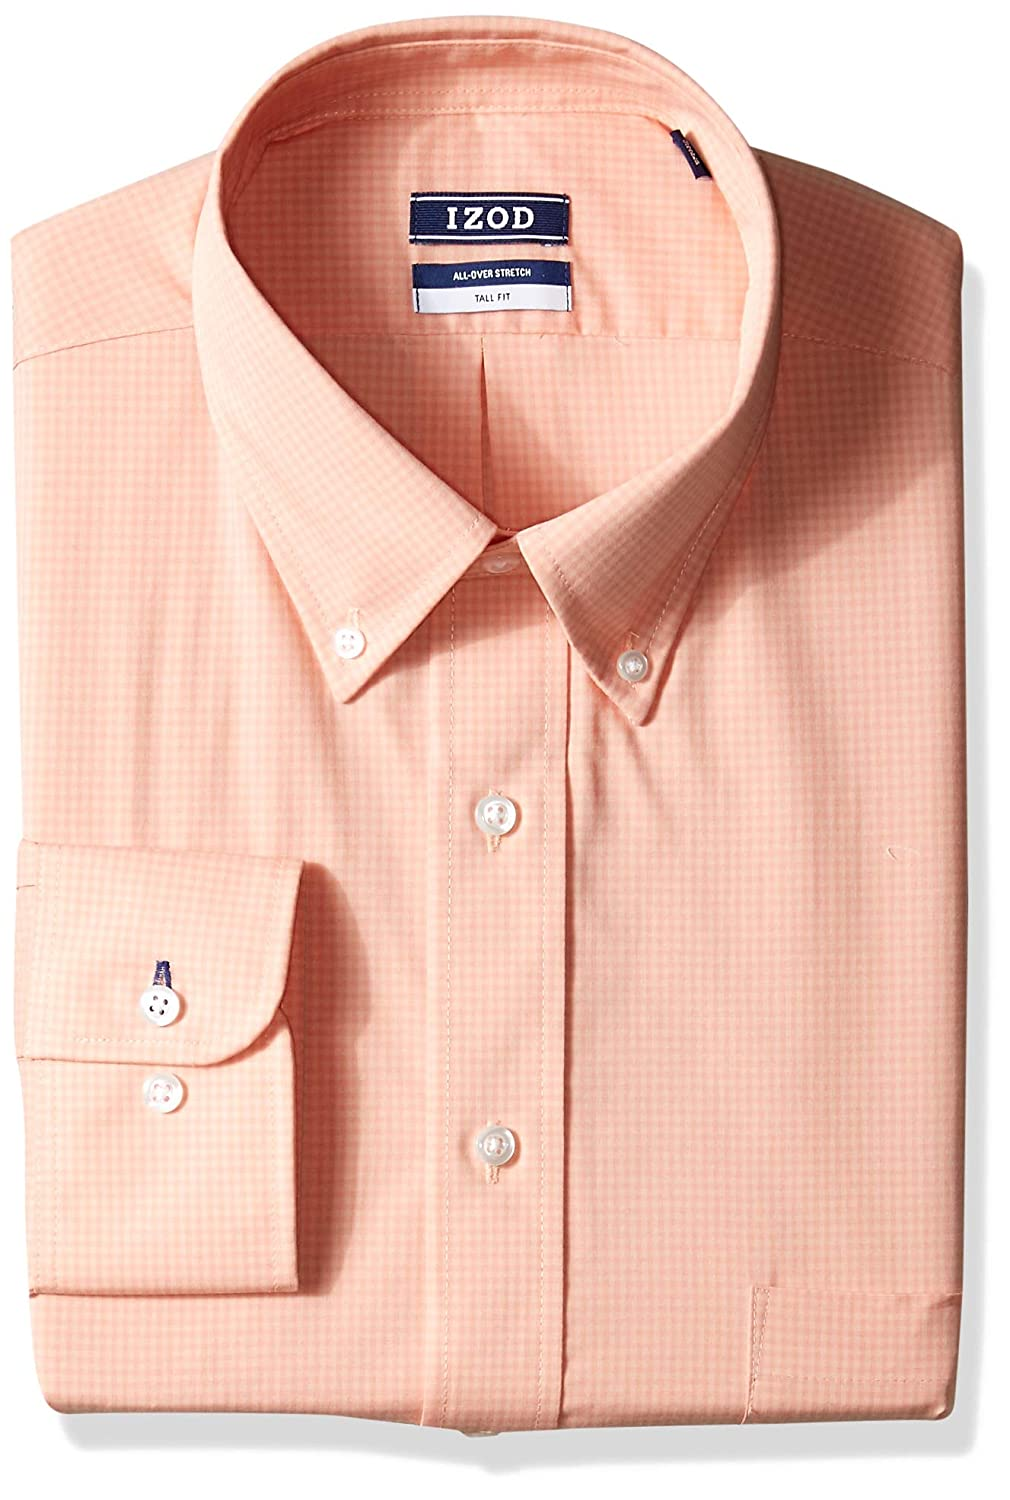 Big and Tall Izod Mens TALL FIT Dress Shirt Stretch Check